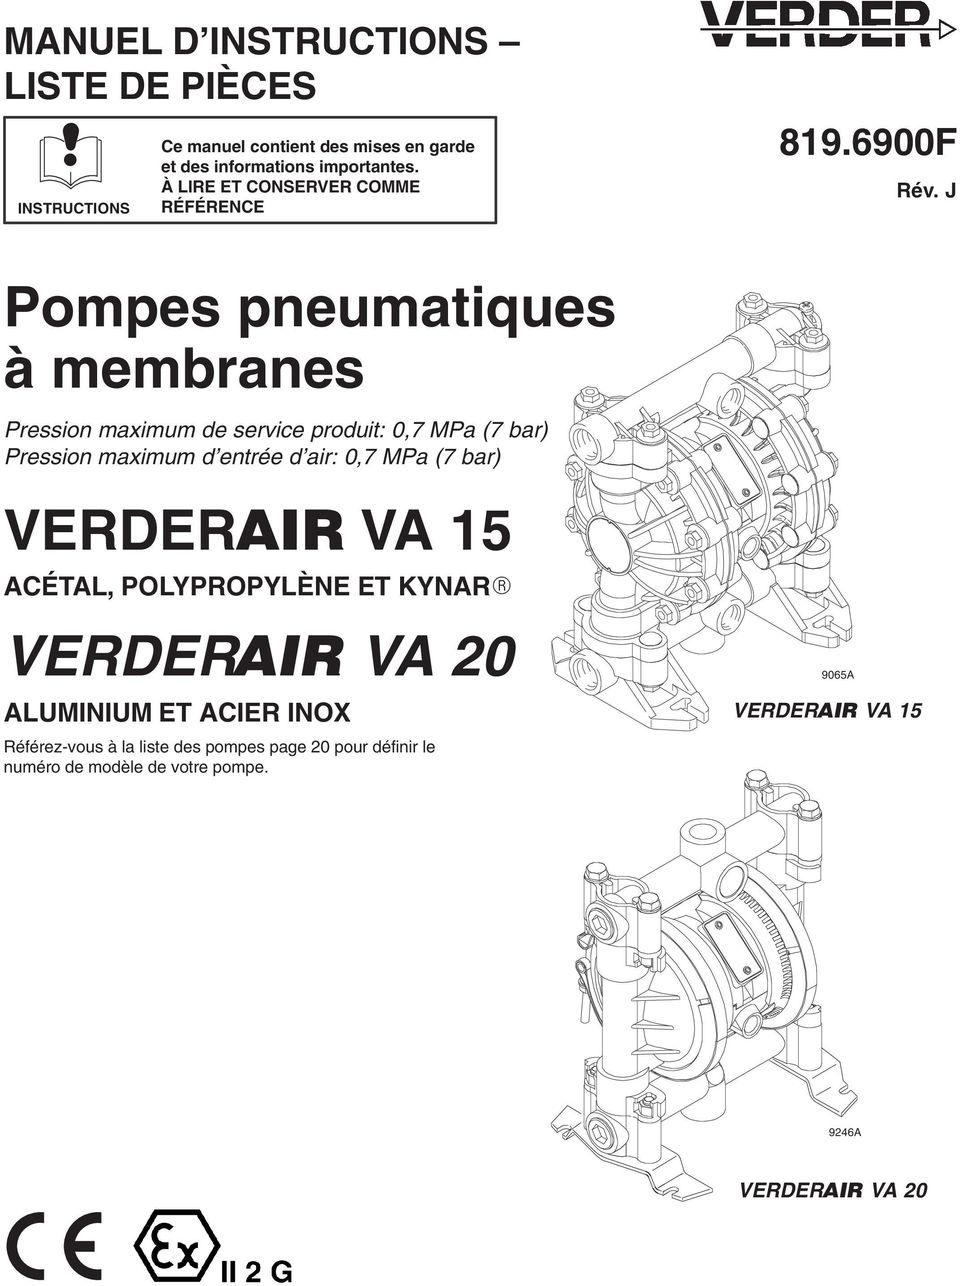 J Pompes pneumatiques à membranes Pression maximum de service produit: 0,7 MPa (7 bar) Pression maximum d entrée d air: 0,7 MPa